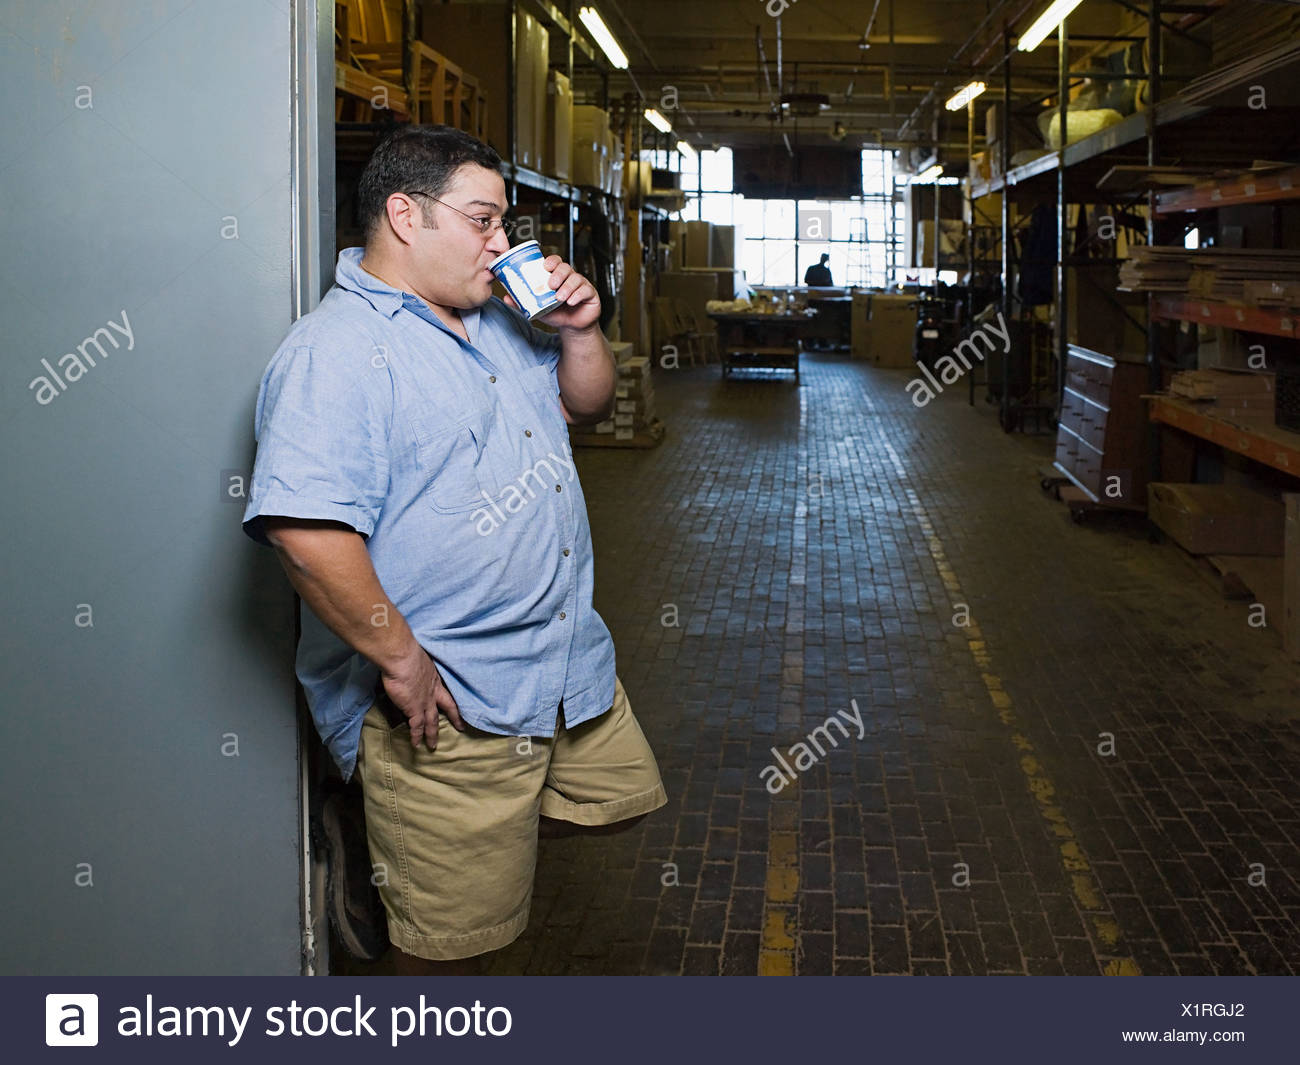 Manual worker drinking coffee - Stock Image